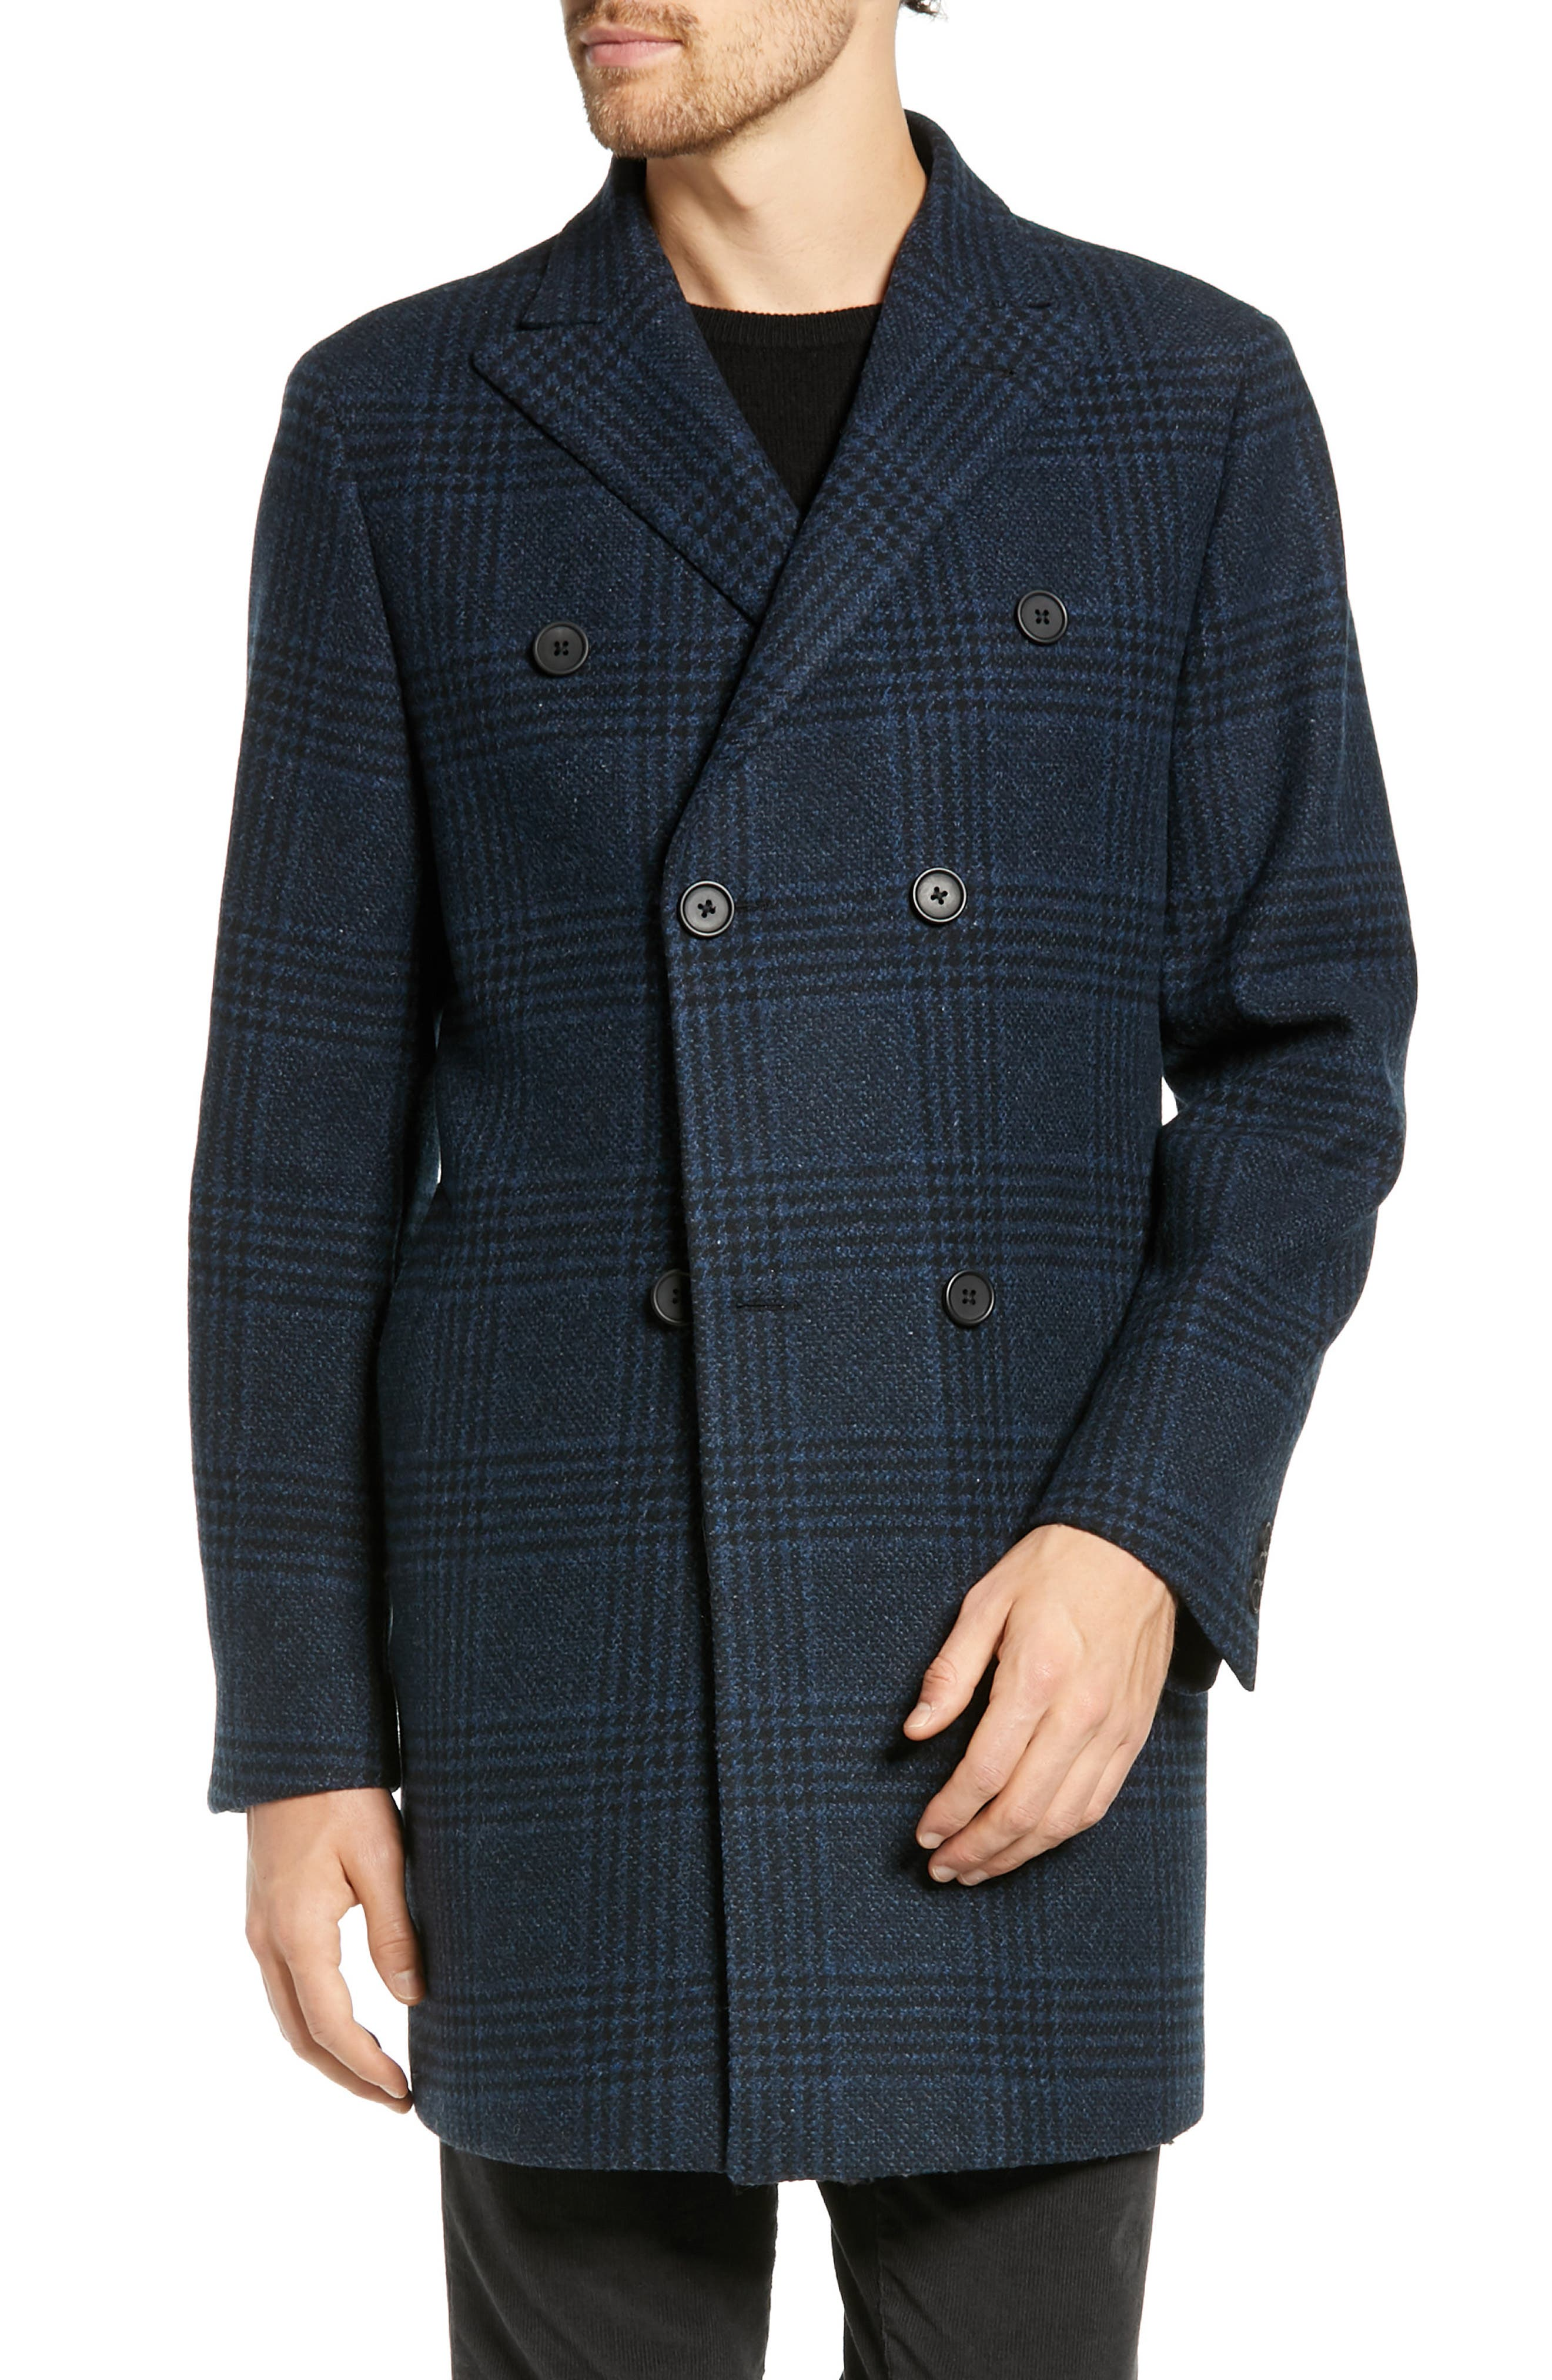 Jackson Extra Trim Fit Wool Overcoat,                             Main thumbnail 1, color,                             NAVY